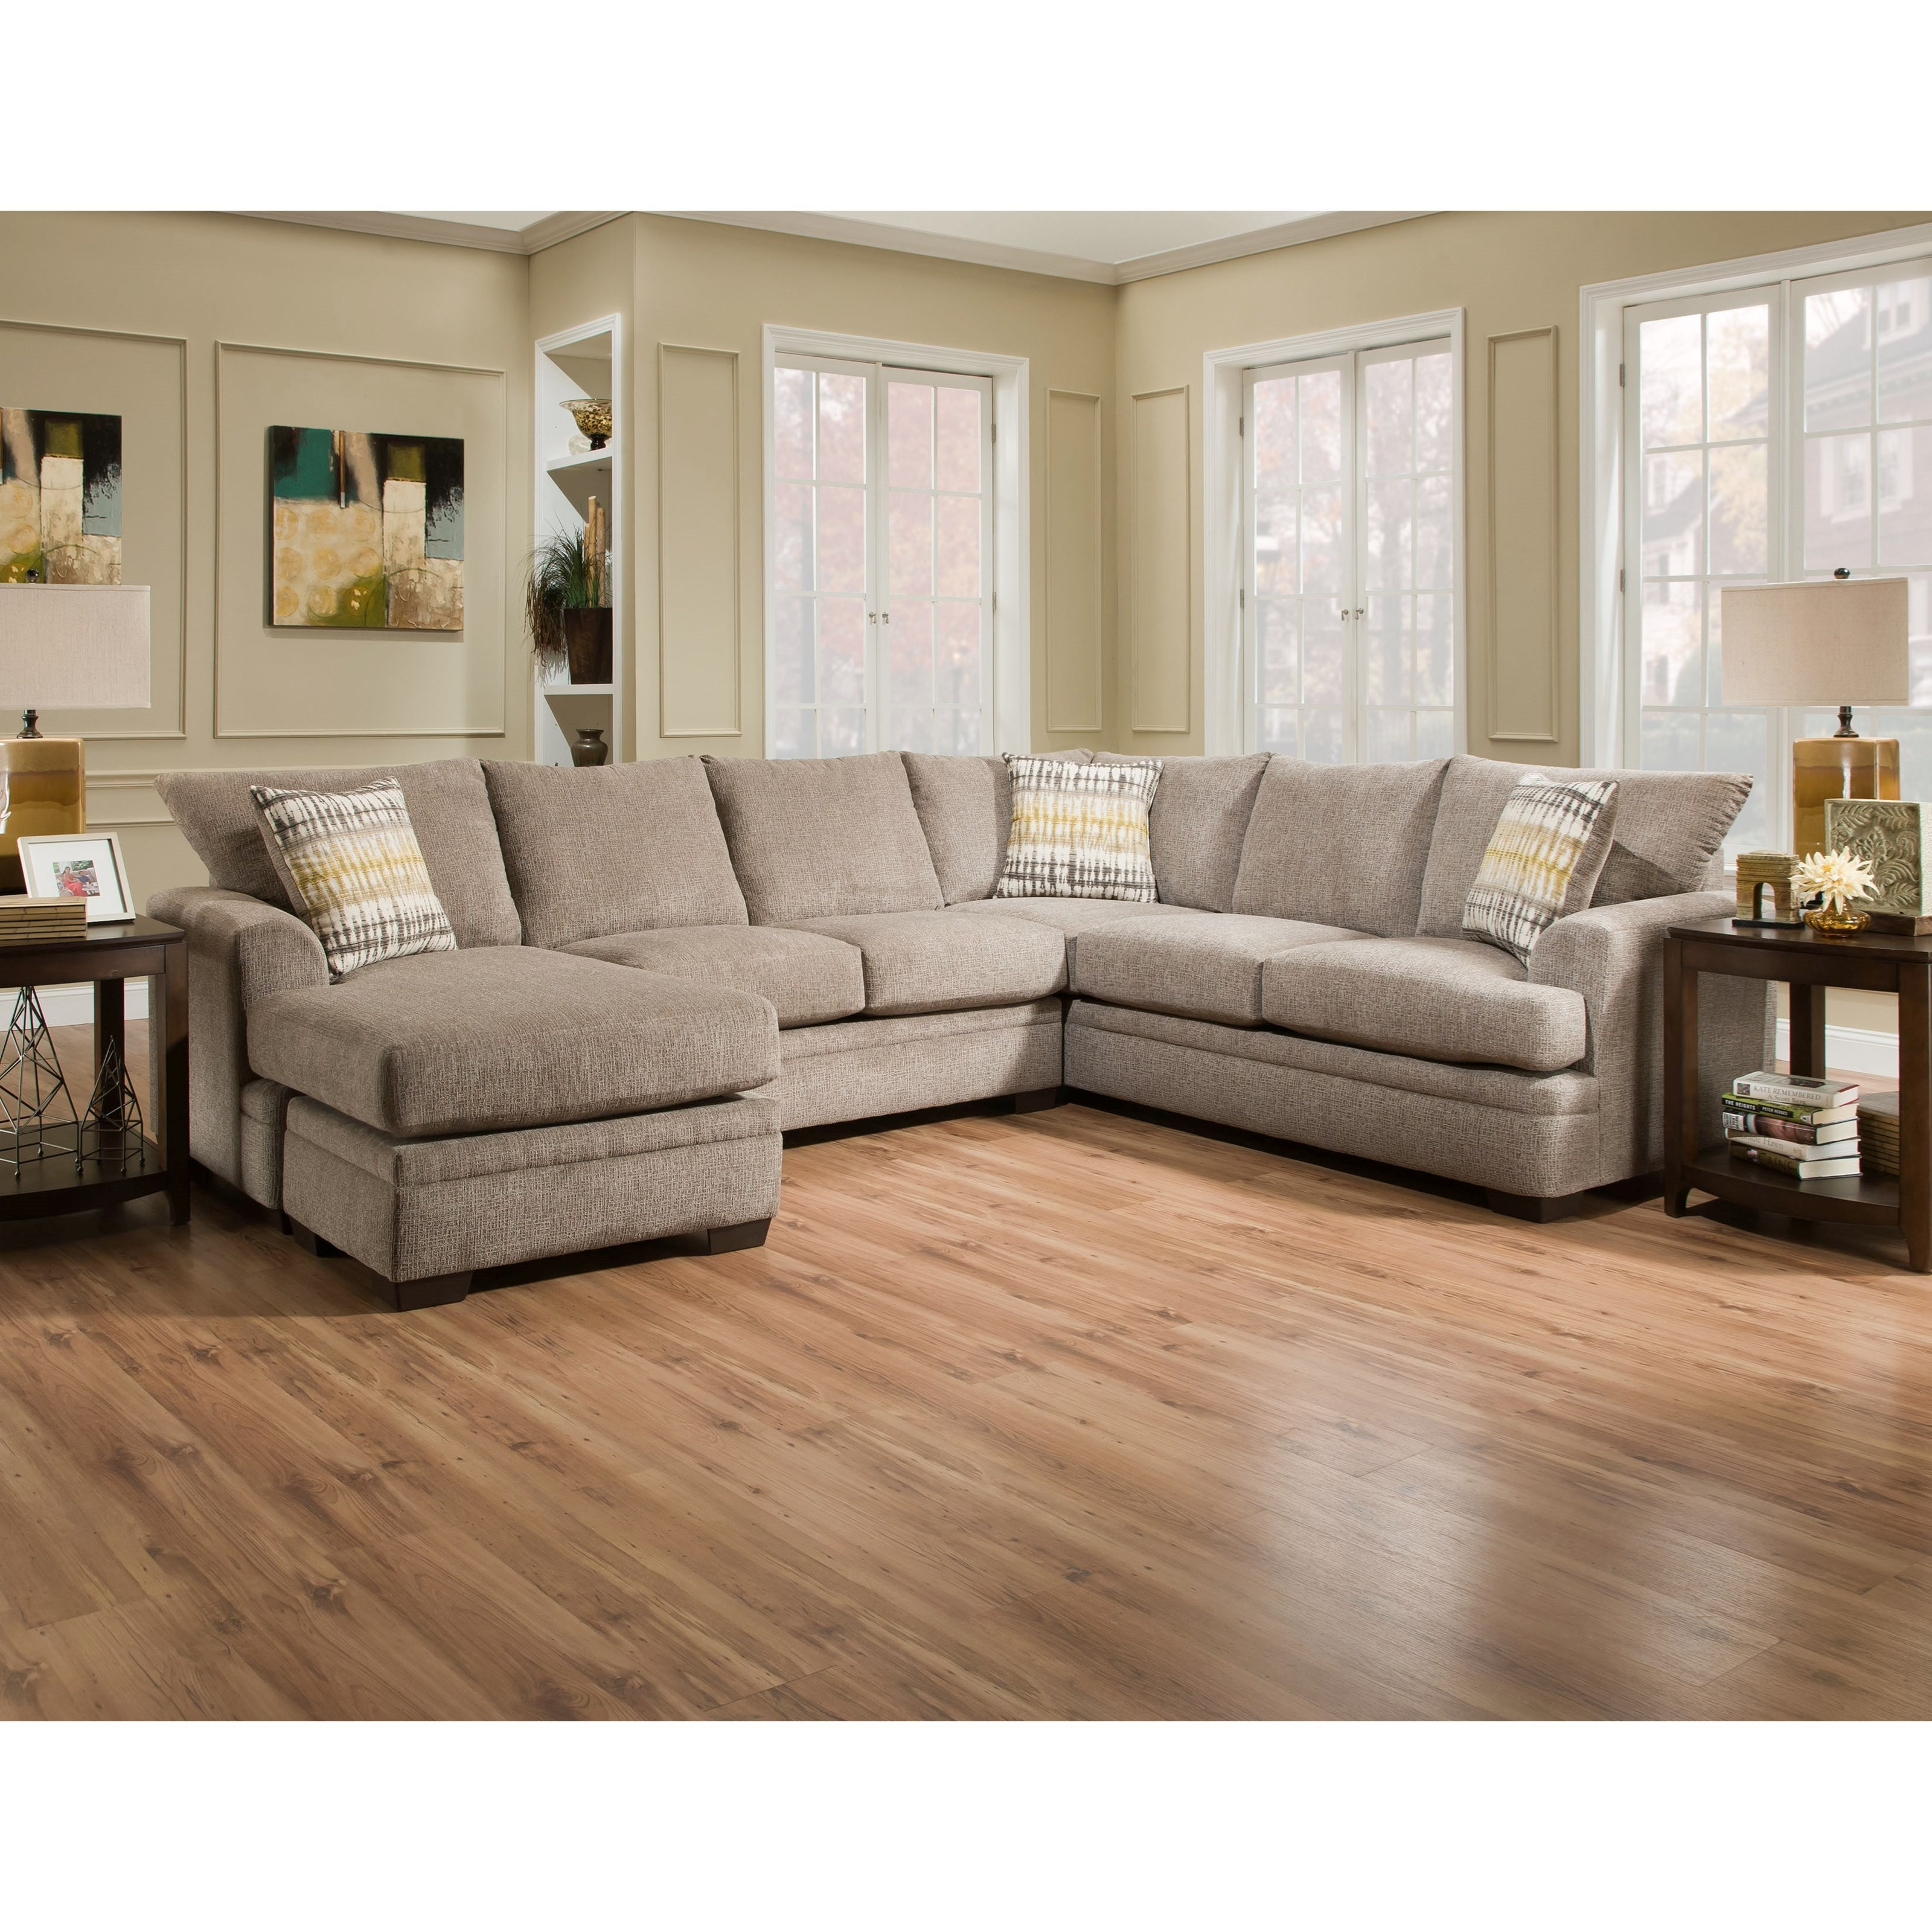 American Furniture 6800 Sectional Sofa with Left Side Chaise - Miskelly Furniture - Sectional Sofas  sc 1 st  Miskelly Furniture : american furniture sectional - Sectionals, Sofas & Couches